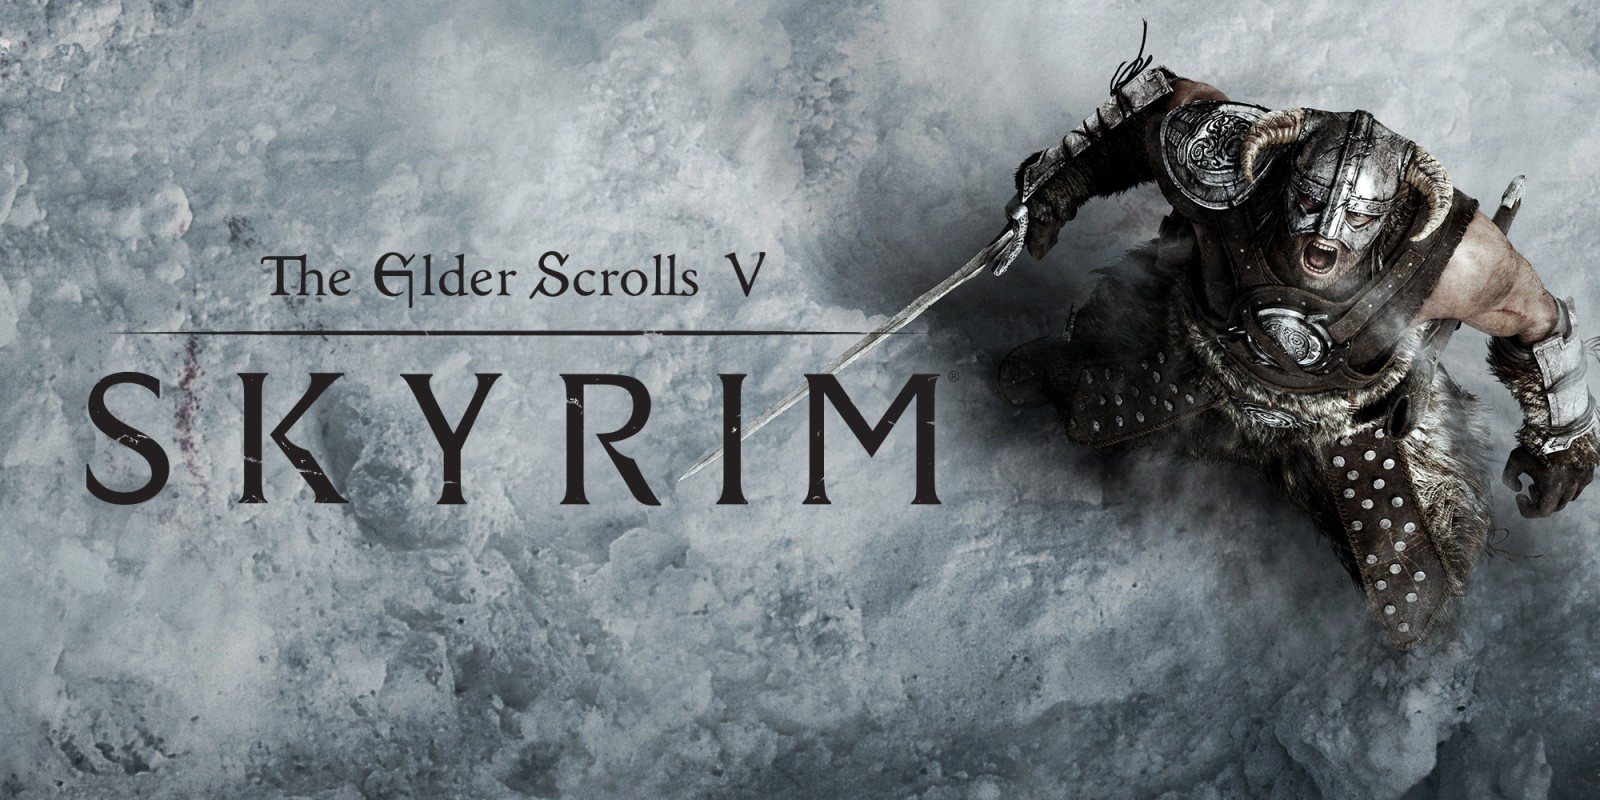 The Elder Scrolls V: Skyrim®